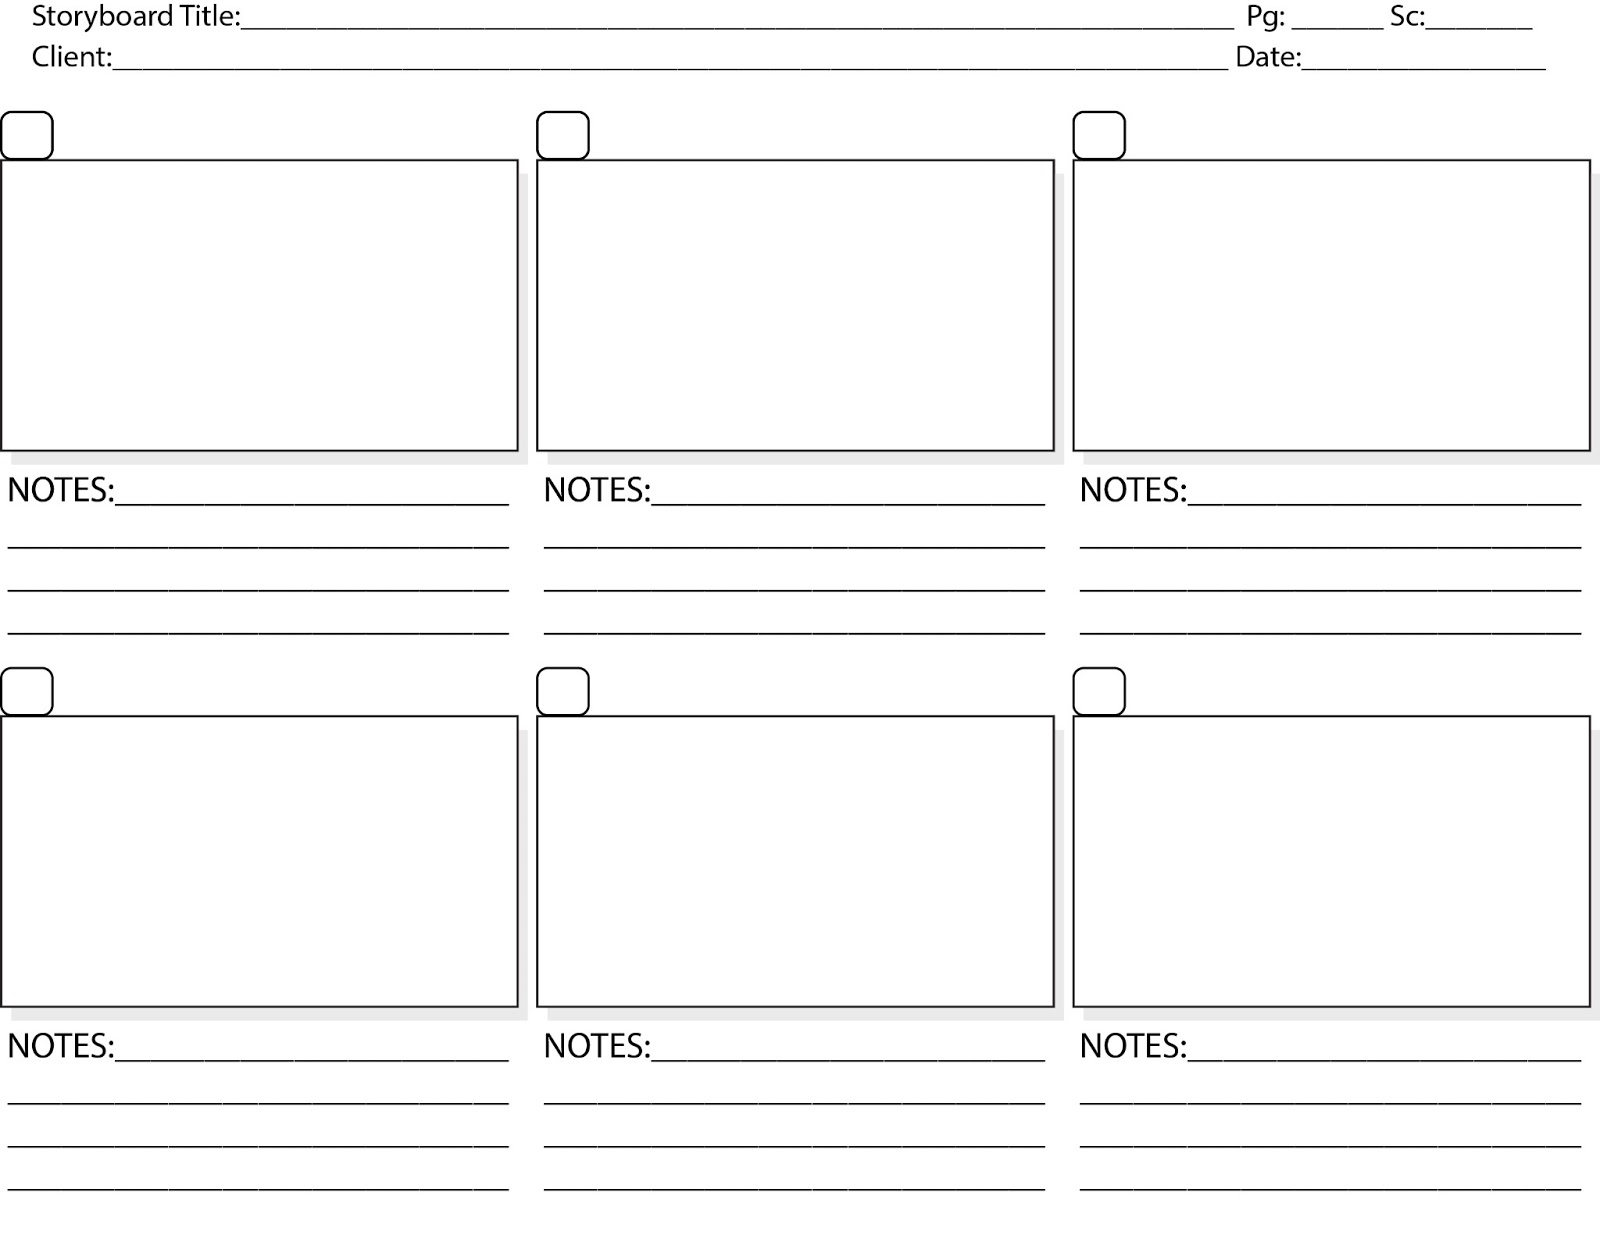 to give storyboarding a try you can download a template